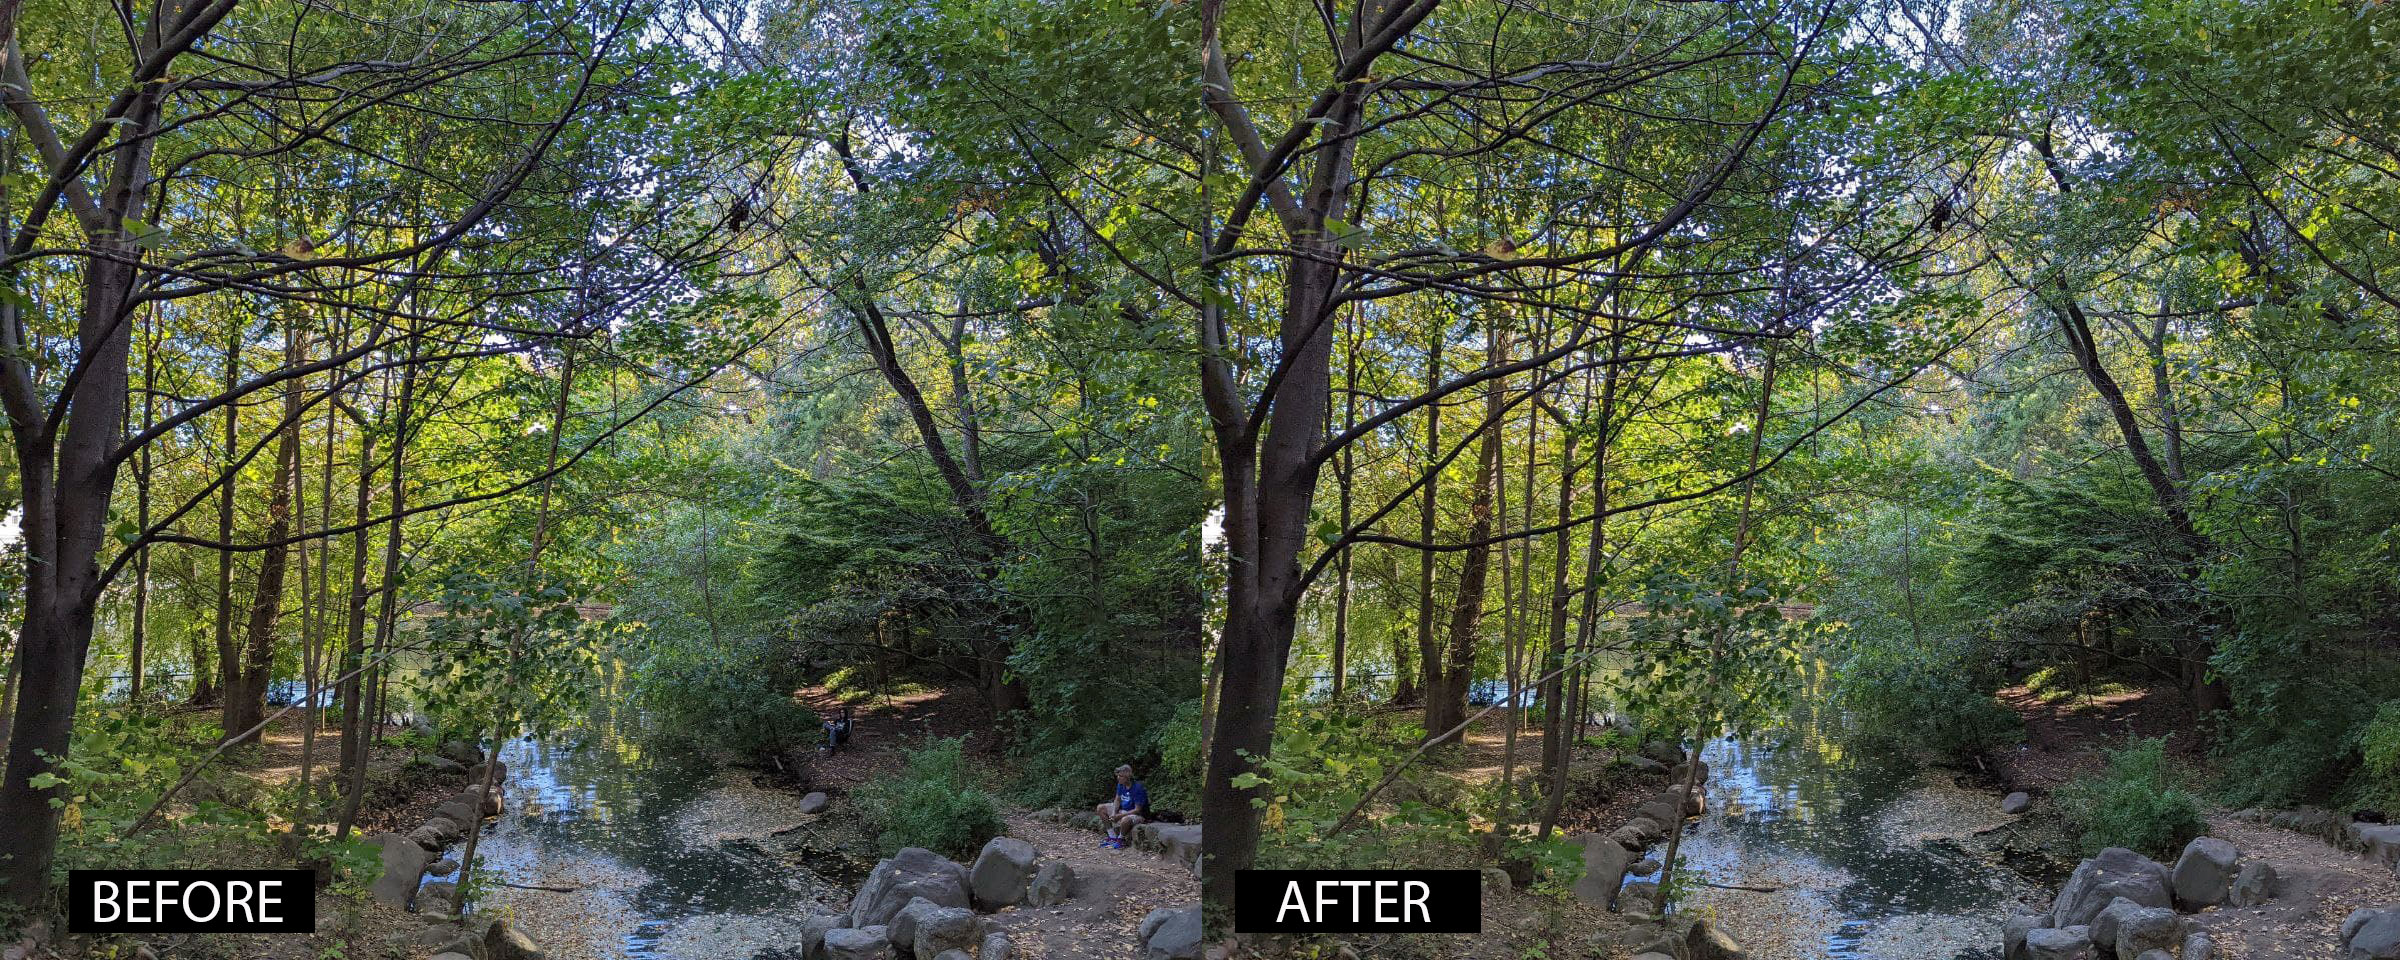 Pixel 6 camera mode samples. A composite showing a picture of a stream before and after Google's Magic Eraser removed two people sitting on the bank.